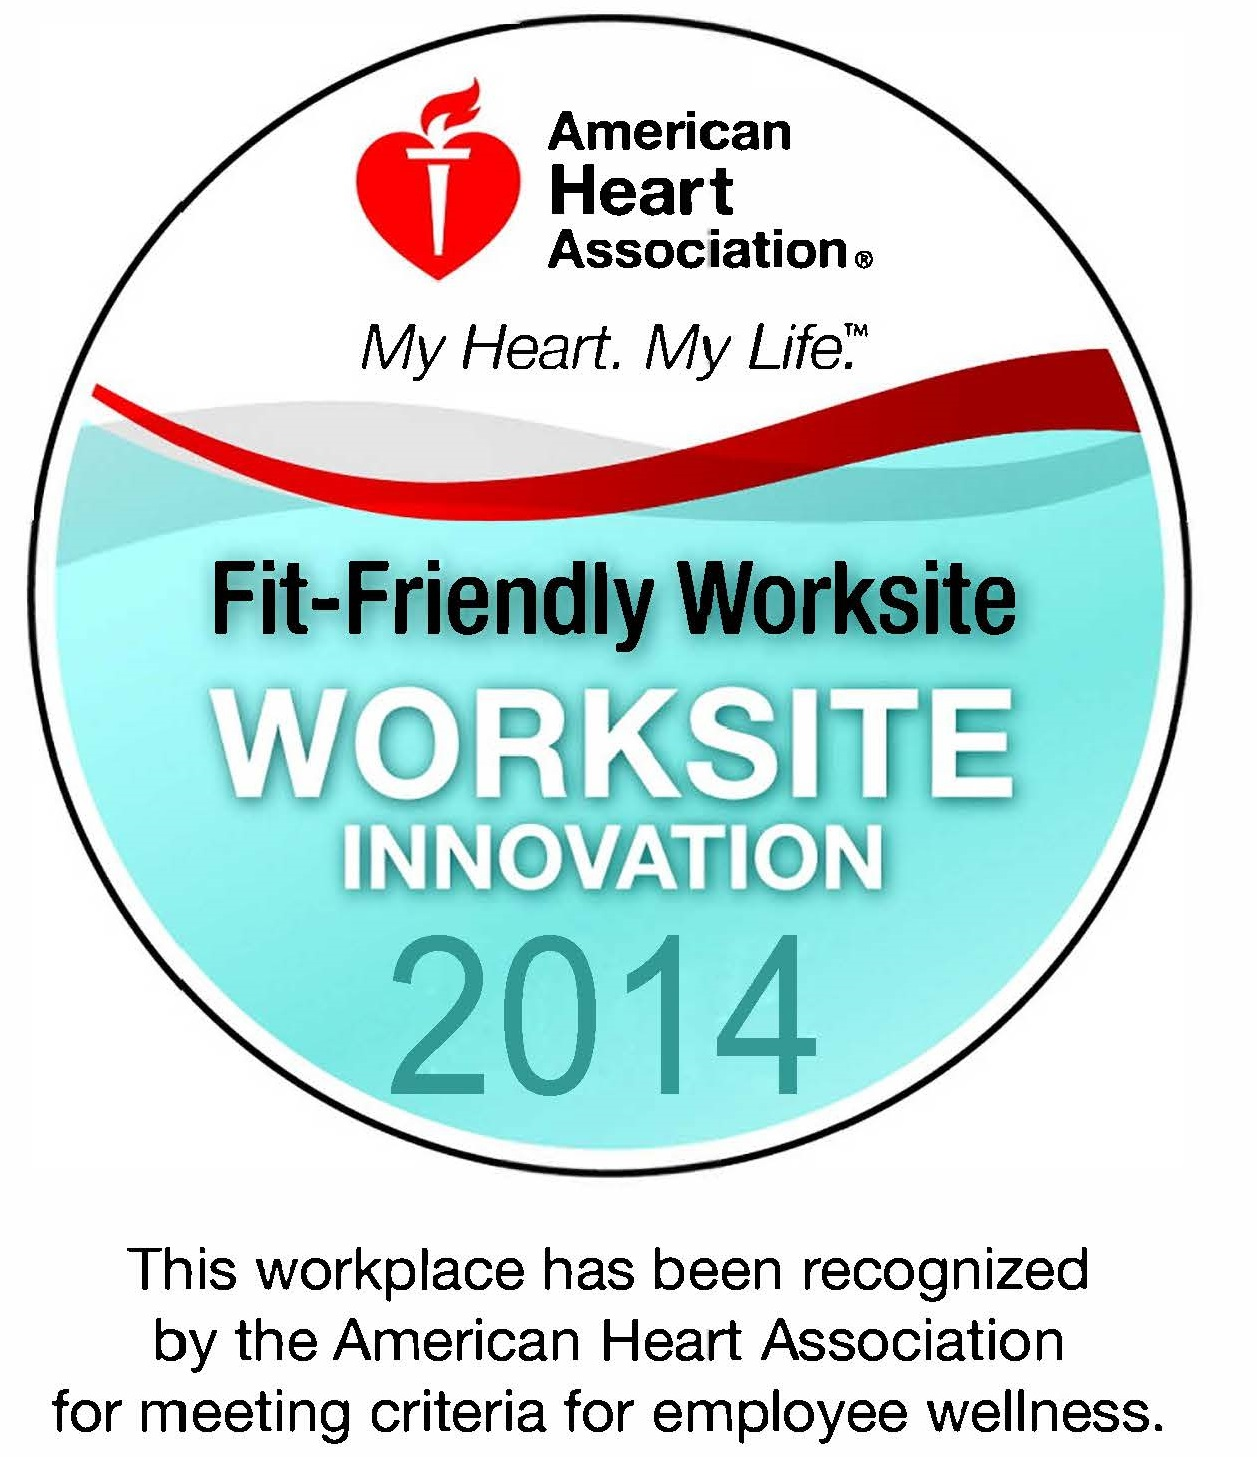 2014 American Heart Association Award Innovation